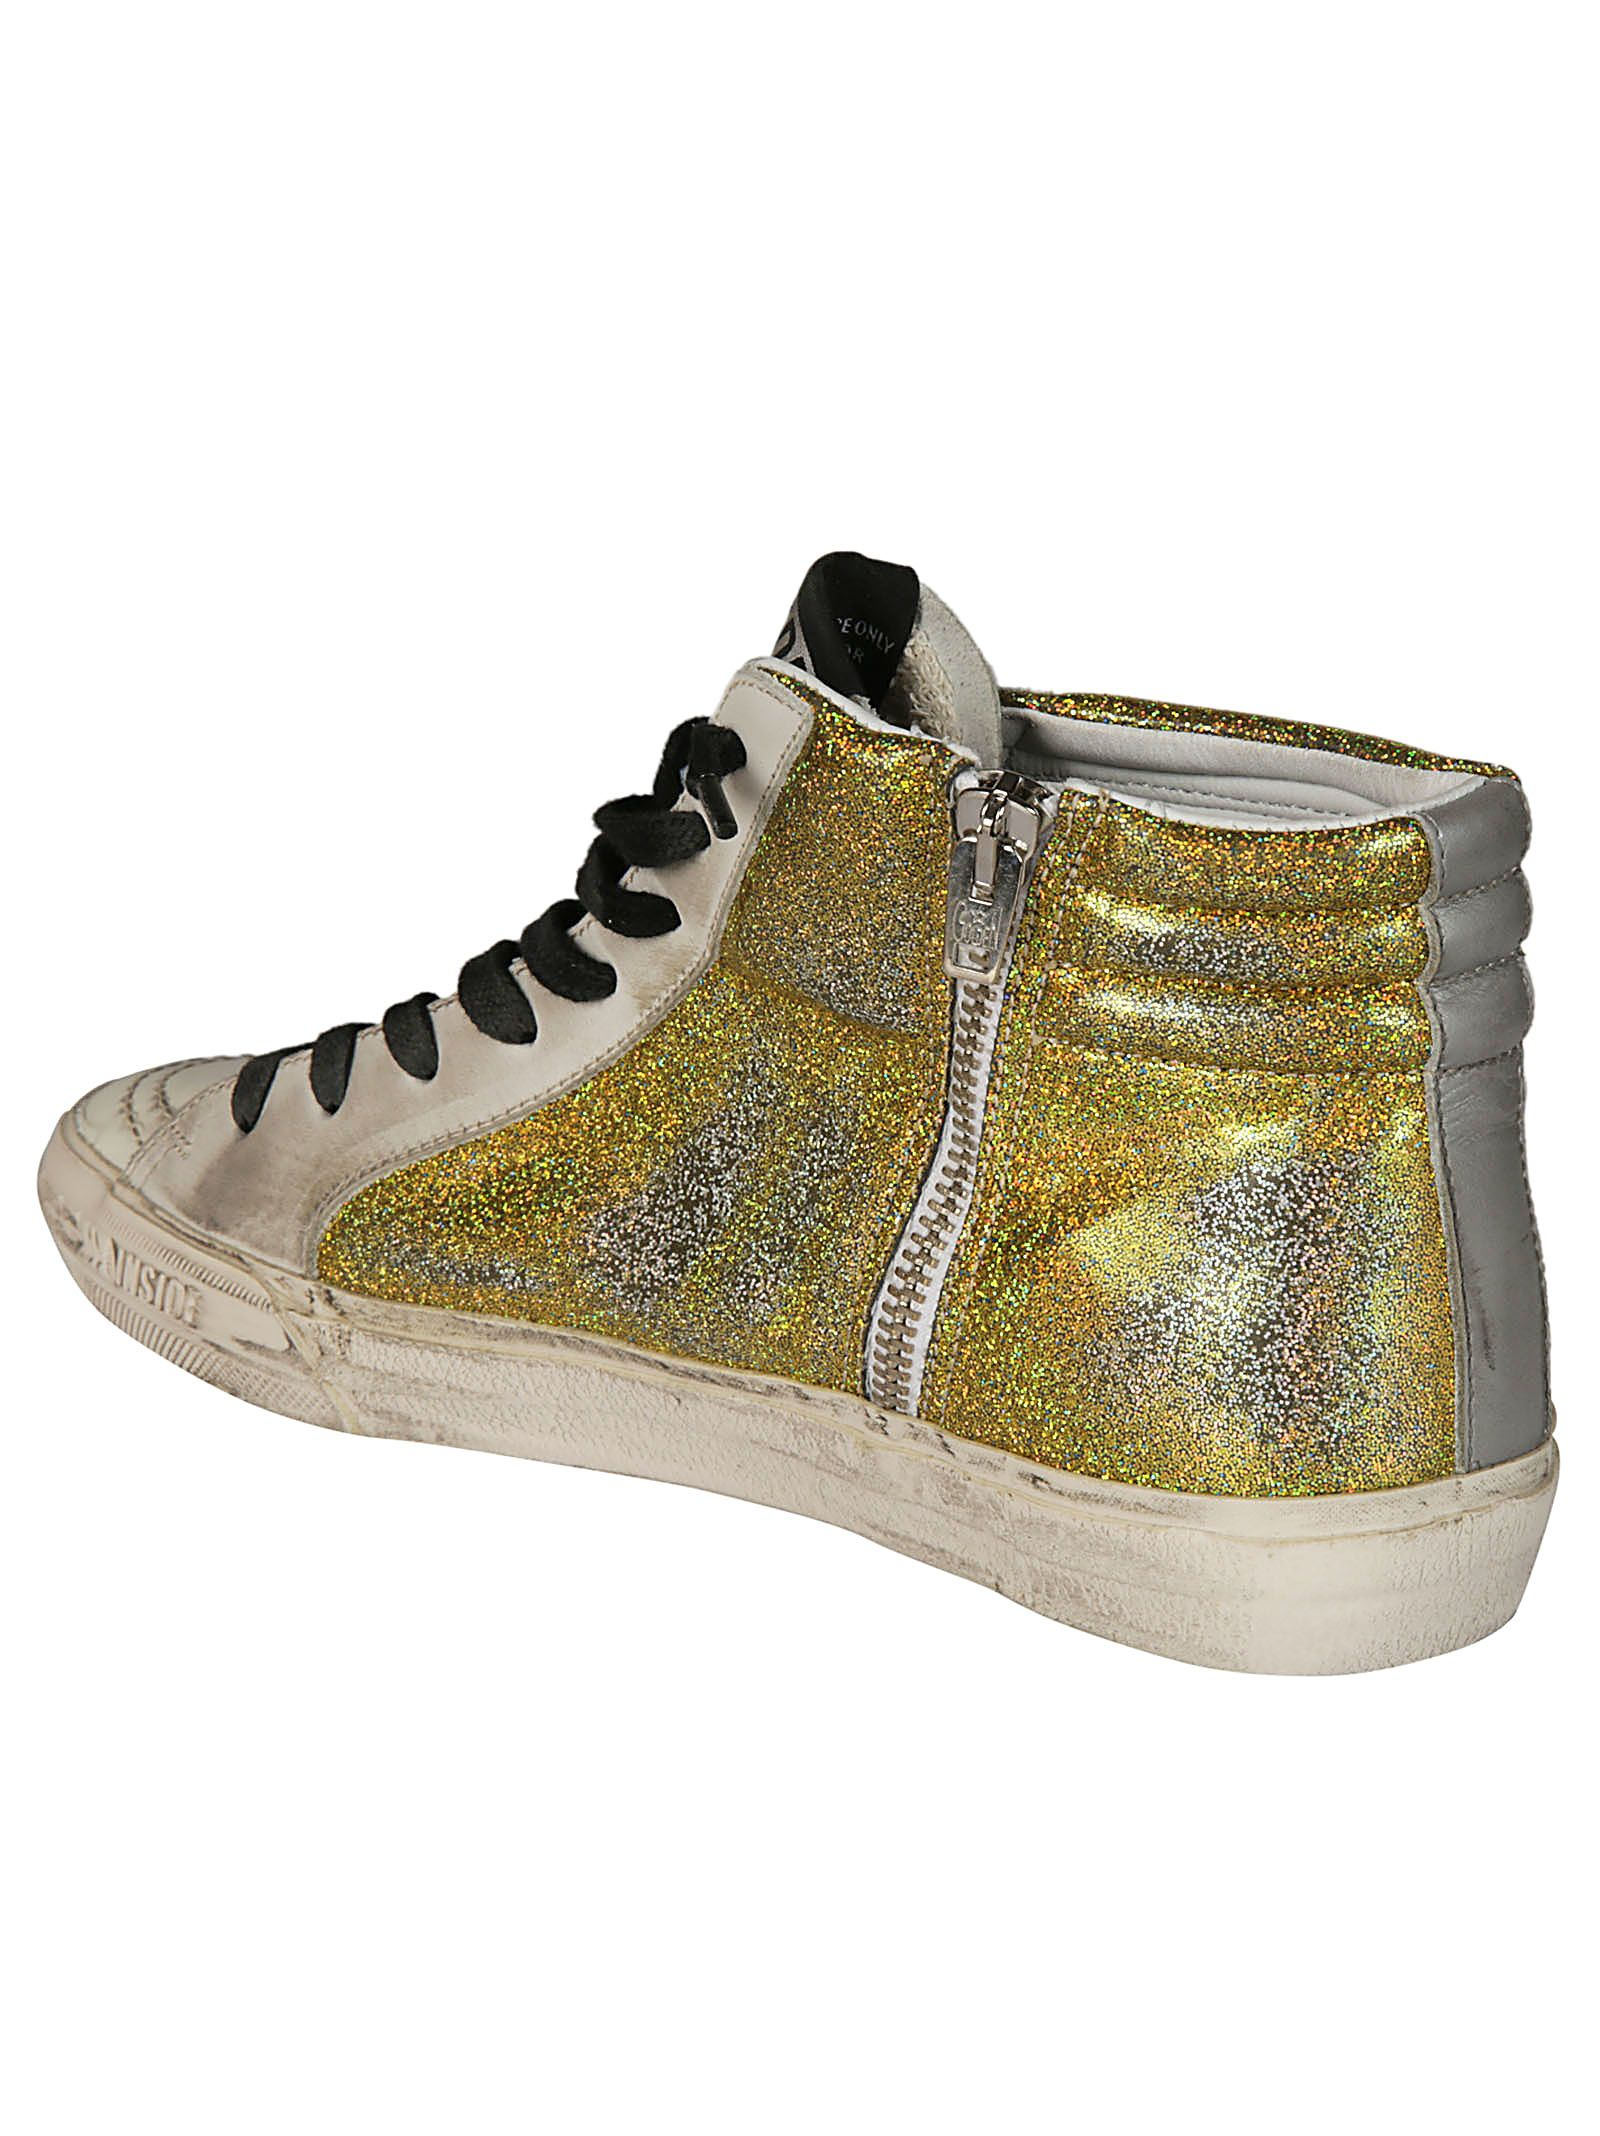 Golden Goose Deluxe Brand Cedro Glittered Sneakers Authentic For Sale With Mastercard Cheap Price Cheap New Arrival MKKbWrB